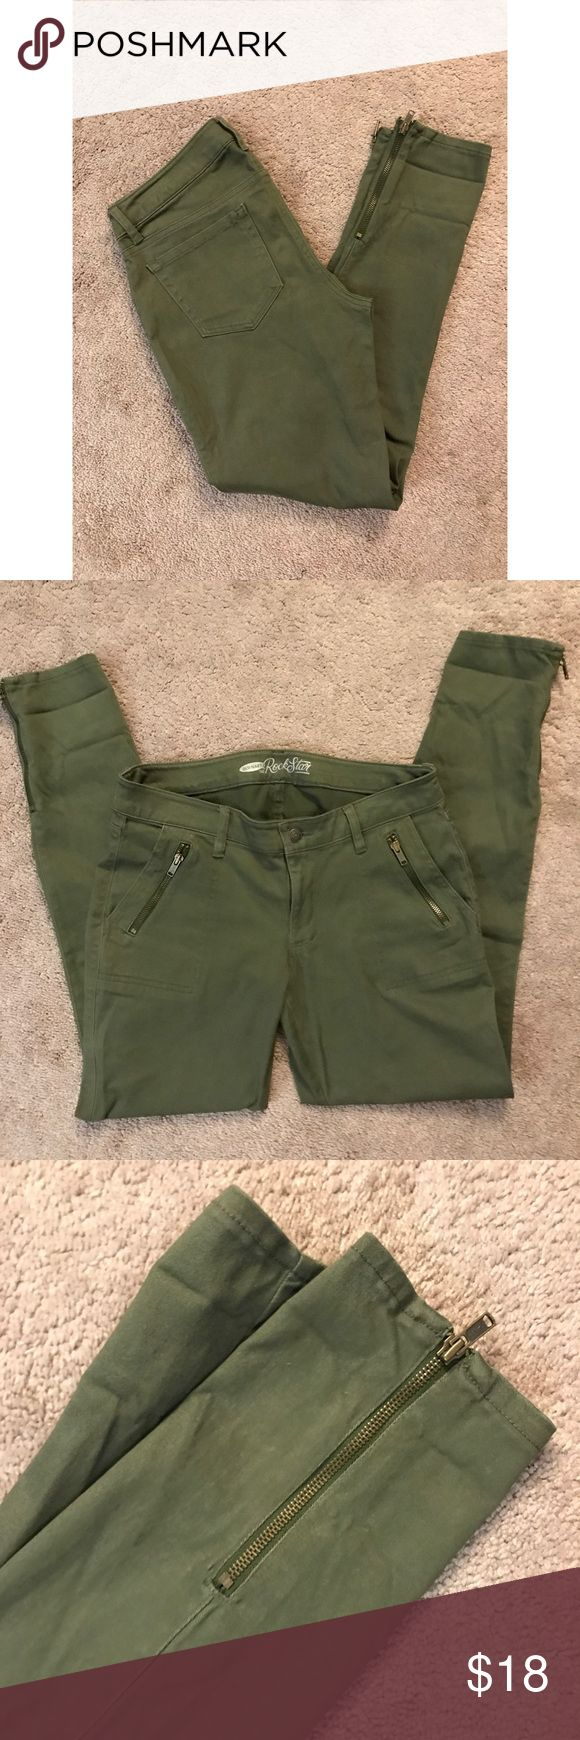 Size 8 Women's Old Navy Rockstar Jeans These Old Navy Rockstar jeans are SO cute with the subtle zippers and Army green color. Size 8 with ankle zippers on both legs and zippers on both front pockets that actually open up and act as another set of pockets! Amazing condition, looks as if never been worn! 👖 Old Navy Jeans Ankle & Cropped